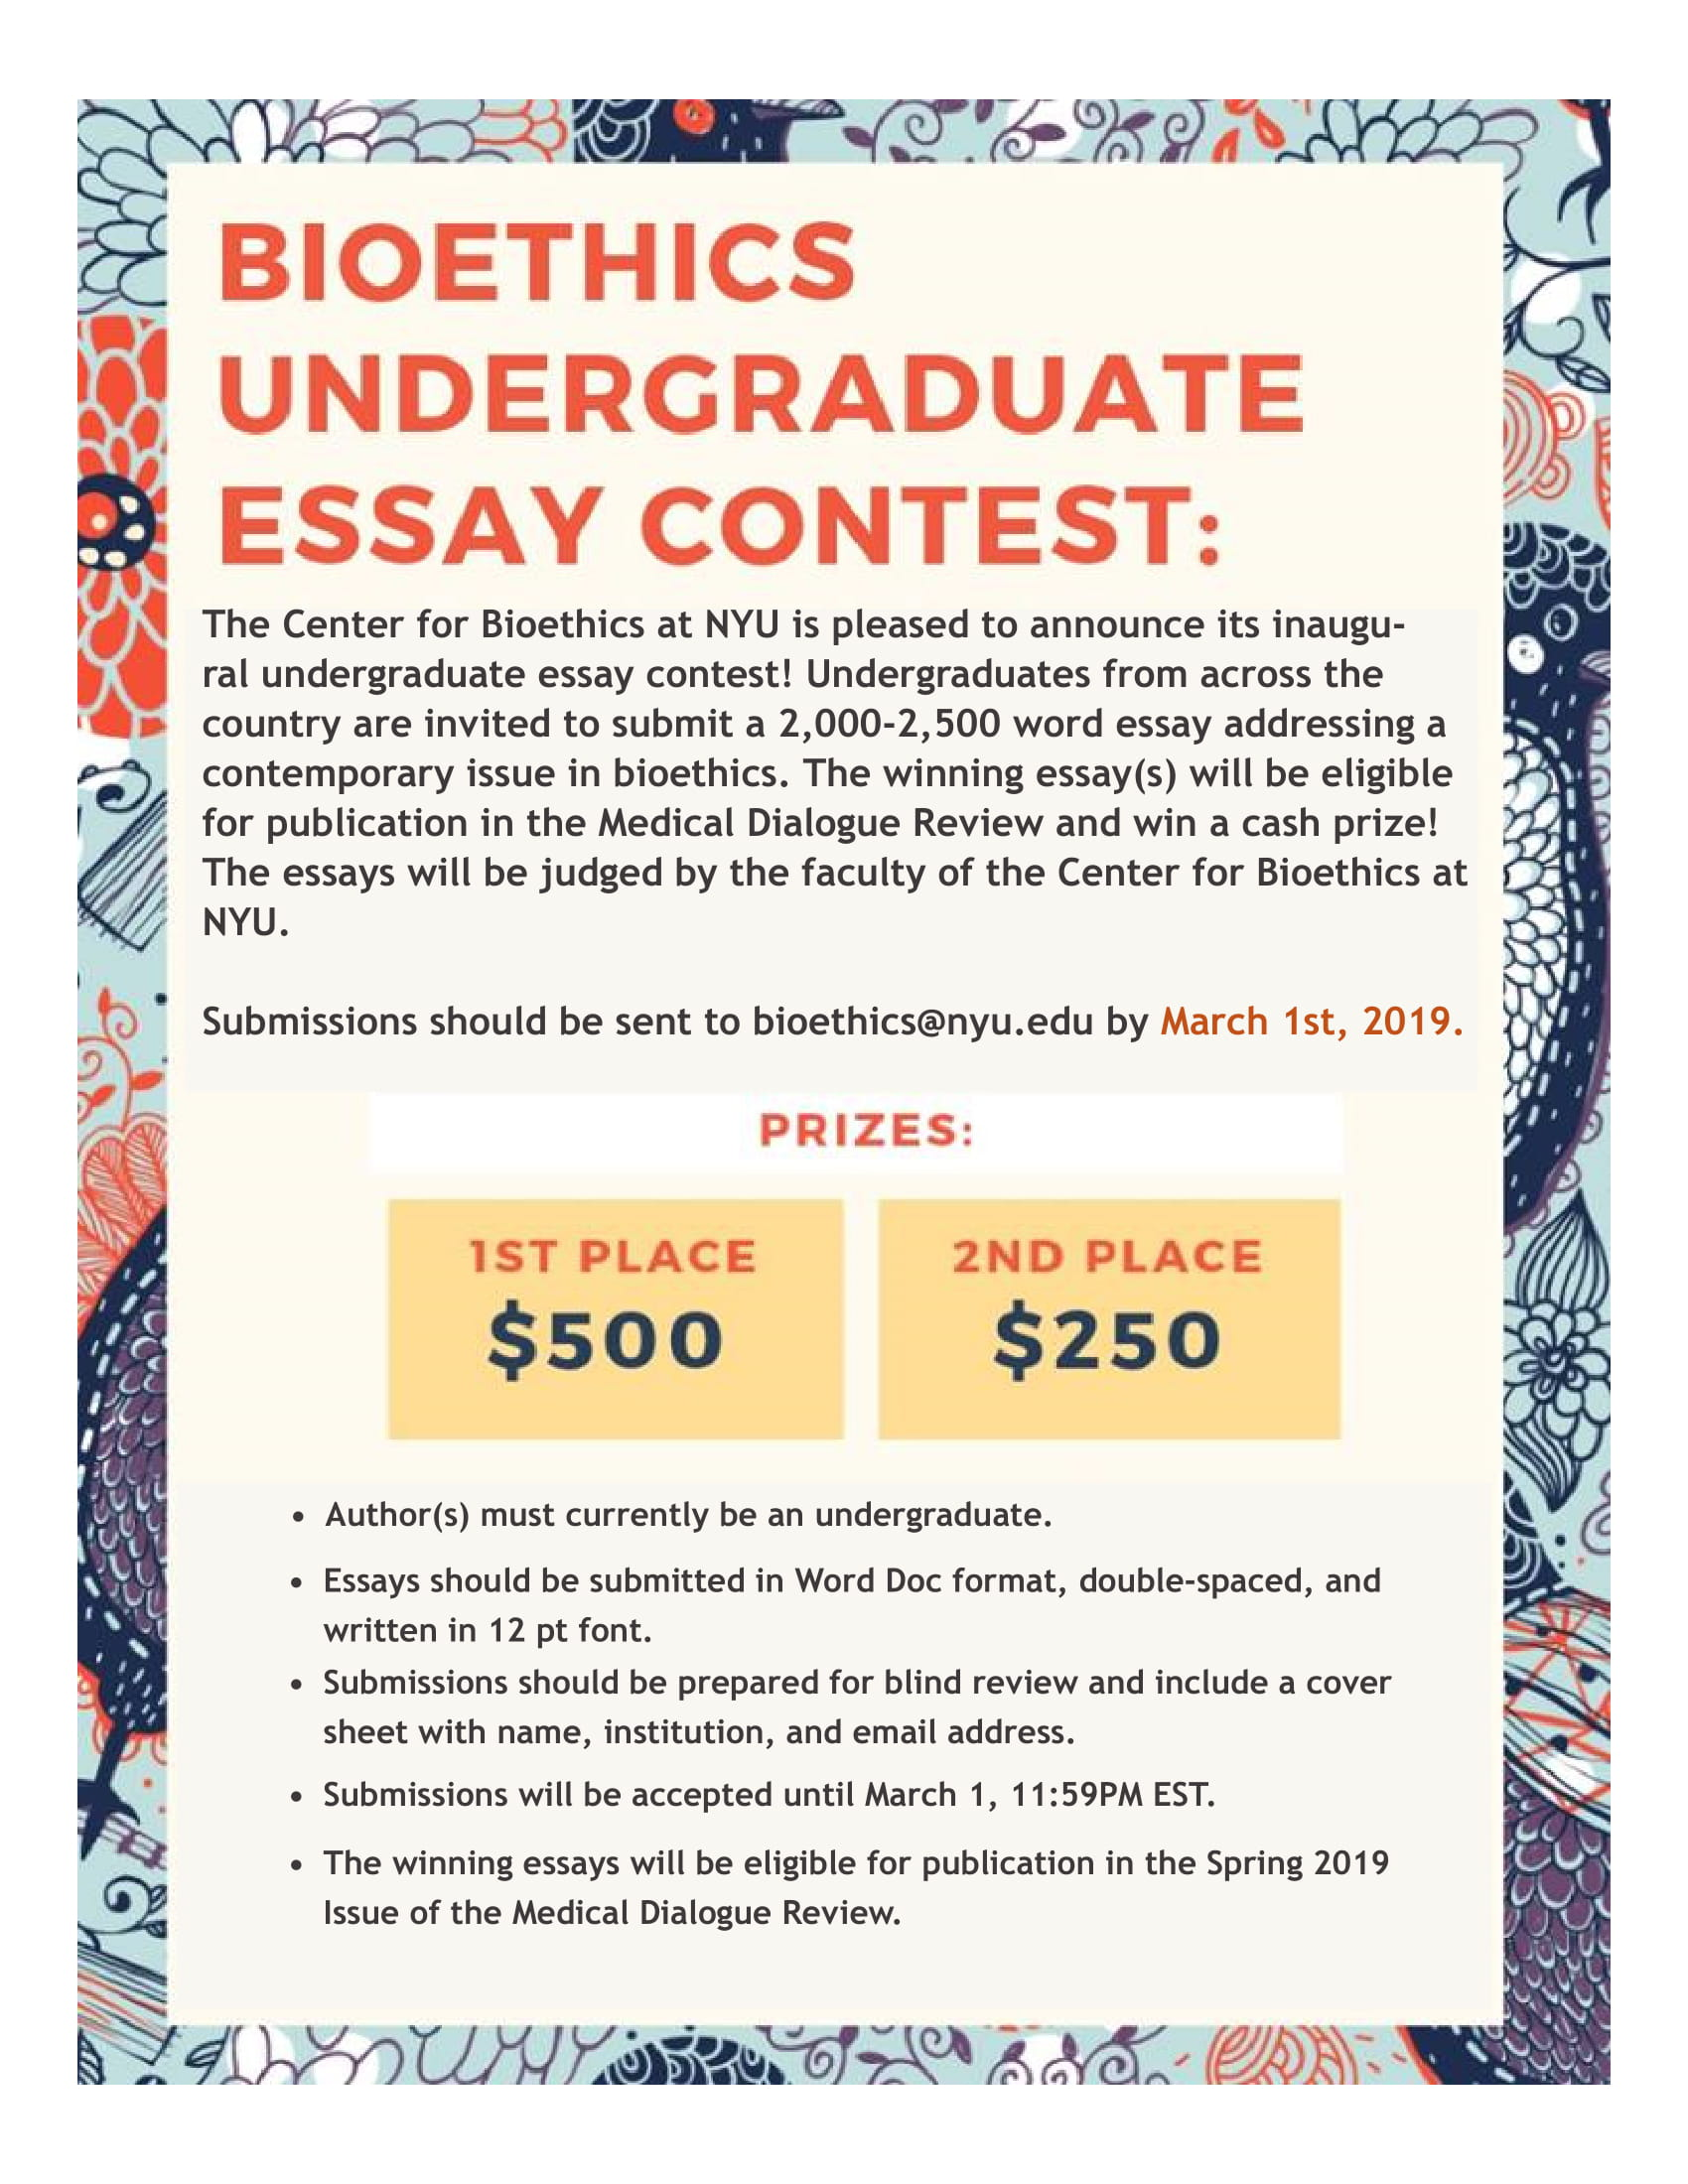 024 Essay Example Submissions Bioethics Contest Flier Impressive Buzzfeed Personal Ireland 2018 Full